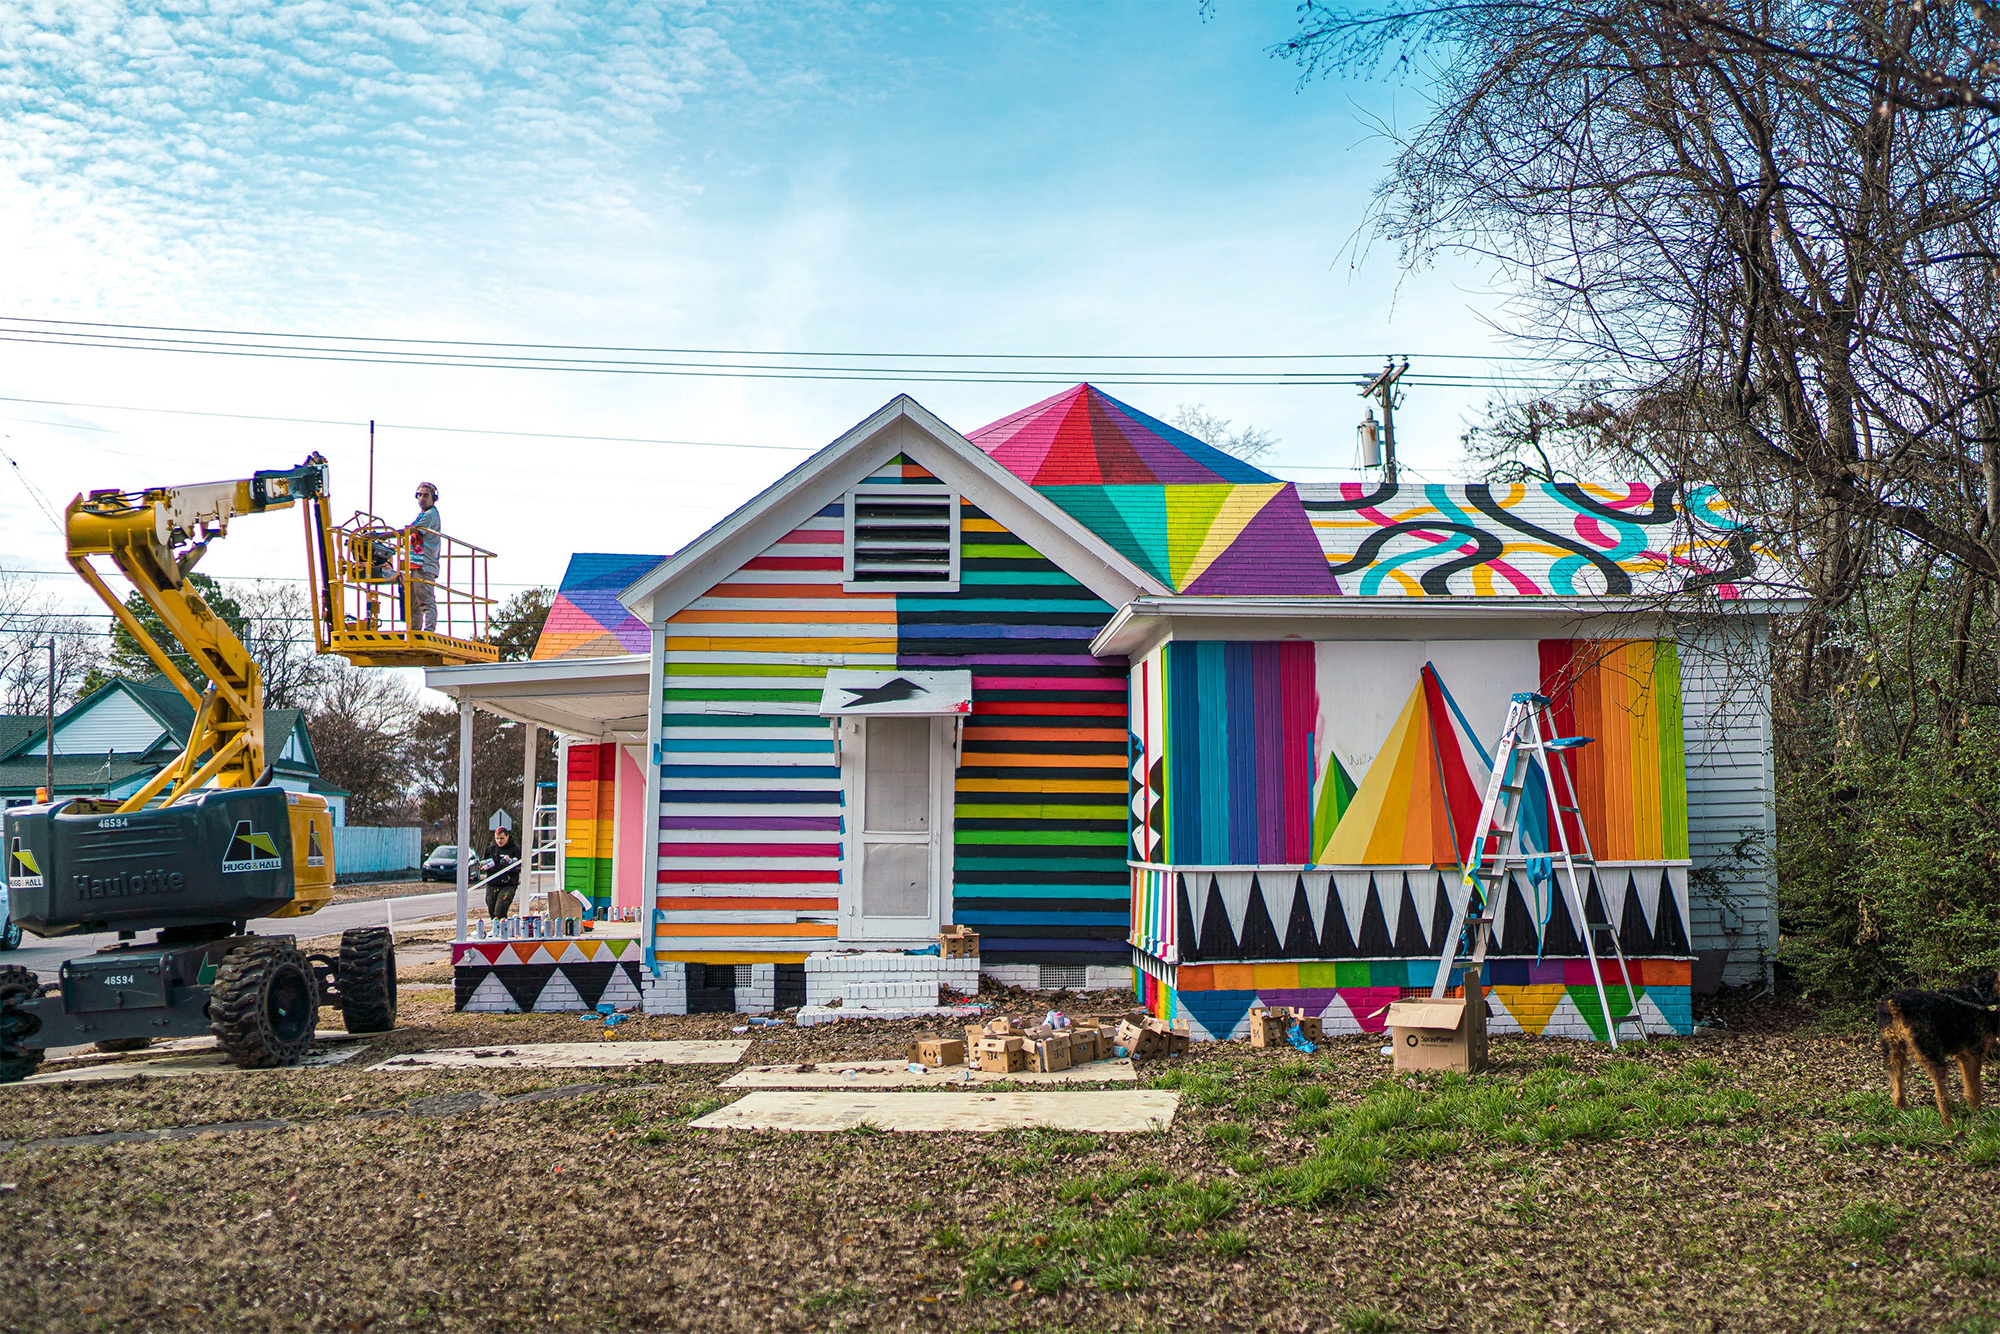 Color-Blocked Animals and Geometric Shapes Transform Neglected Home in Installation by Okuda San Miguel